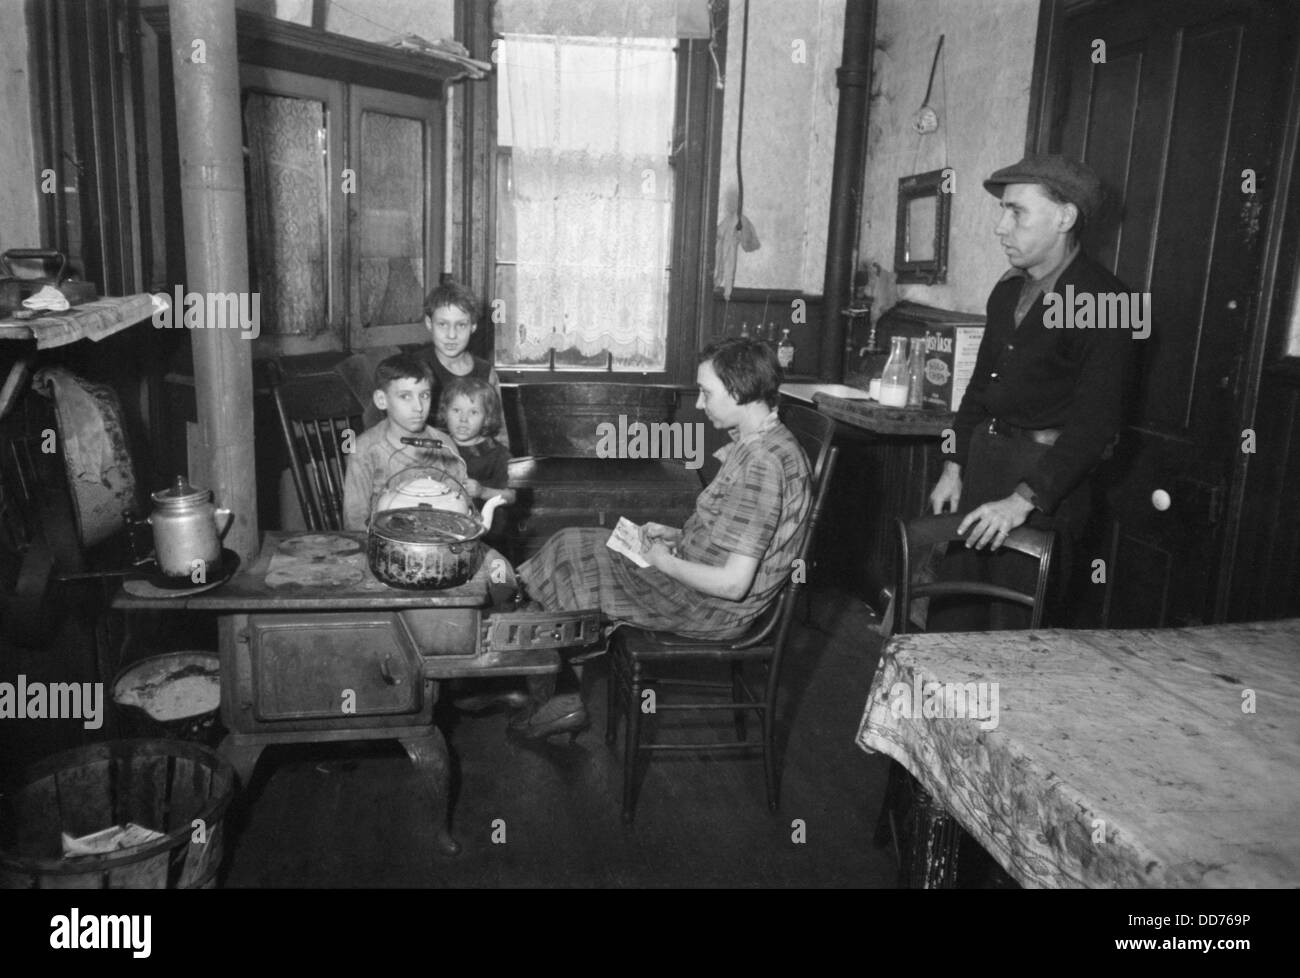 Family in their tenement kitchen, Hamilton Co., Ohio, Dec. 1935. Photo by Carl Mydans. (BSLOC_2013_8_10) - Stock Image